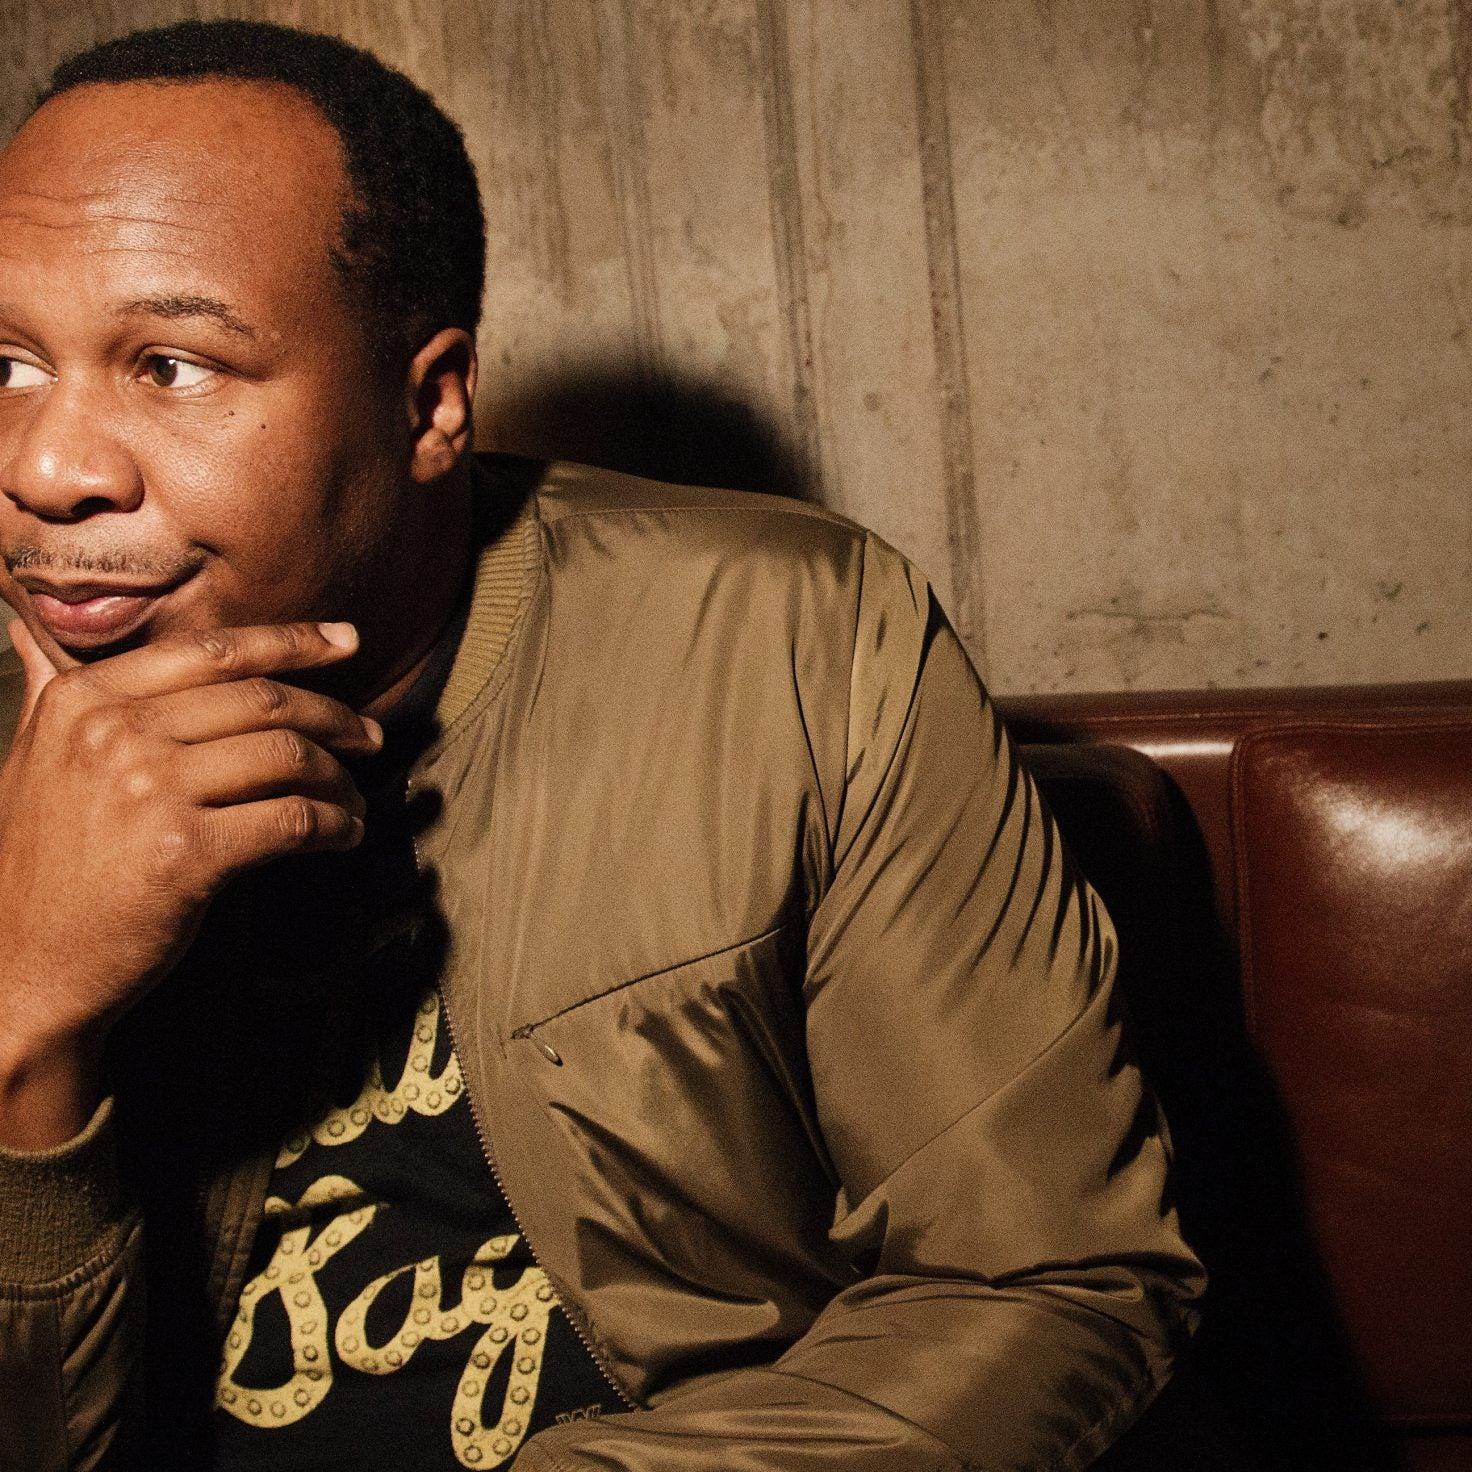 Comic Roy Wood Jr. Gathers Support For Comedy Club Employees Affected By COVID-19